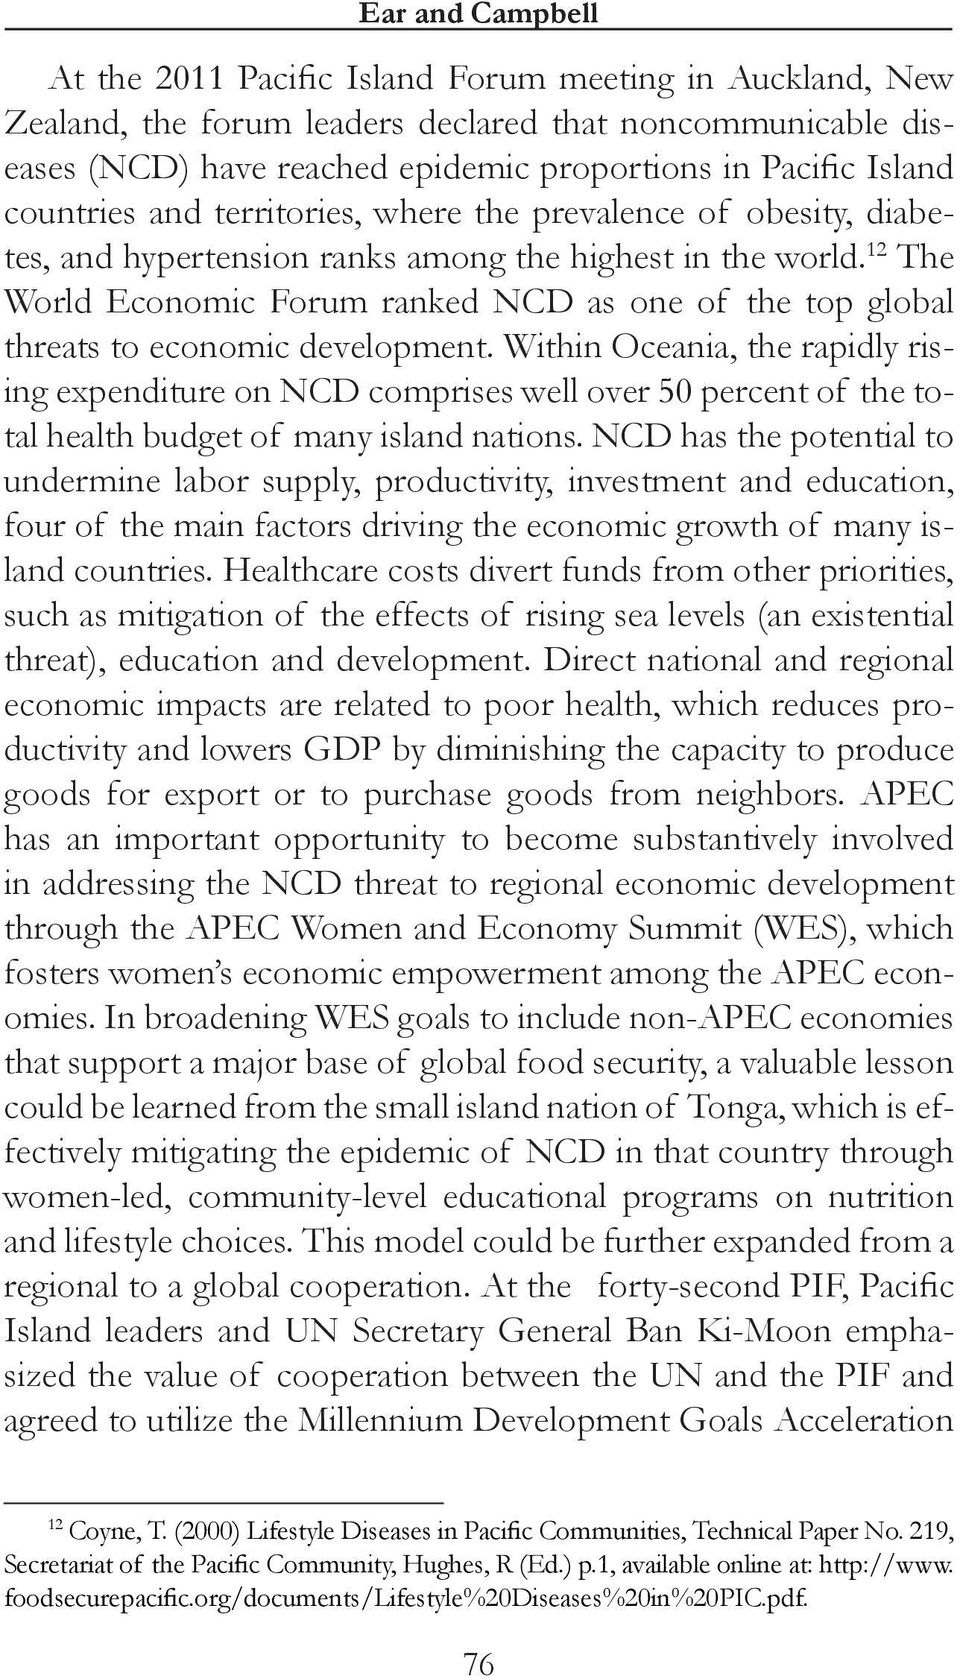 12 The World Economic Forum ranked NCD as one of the top global threats to economic development.